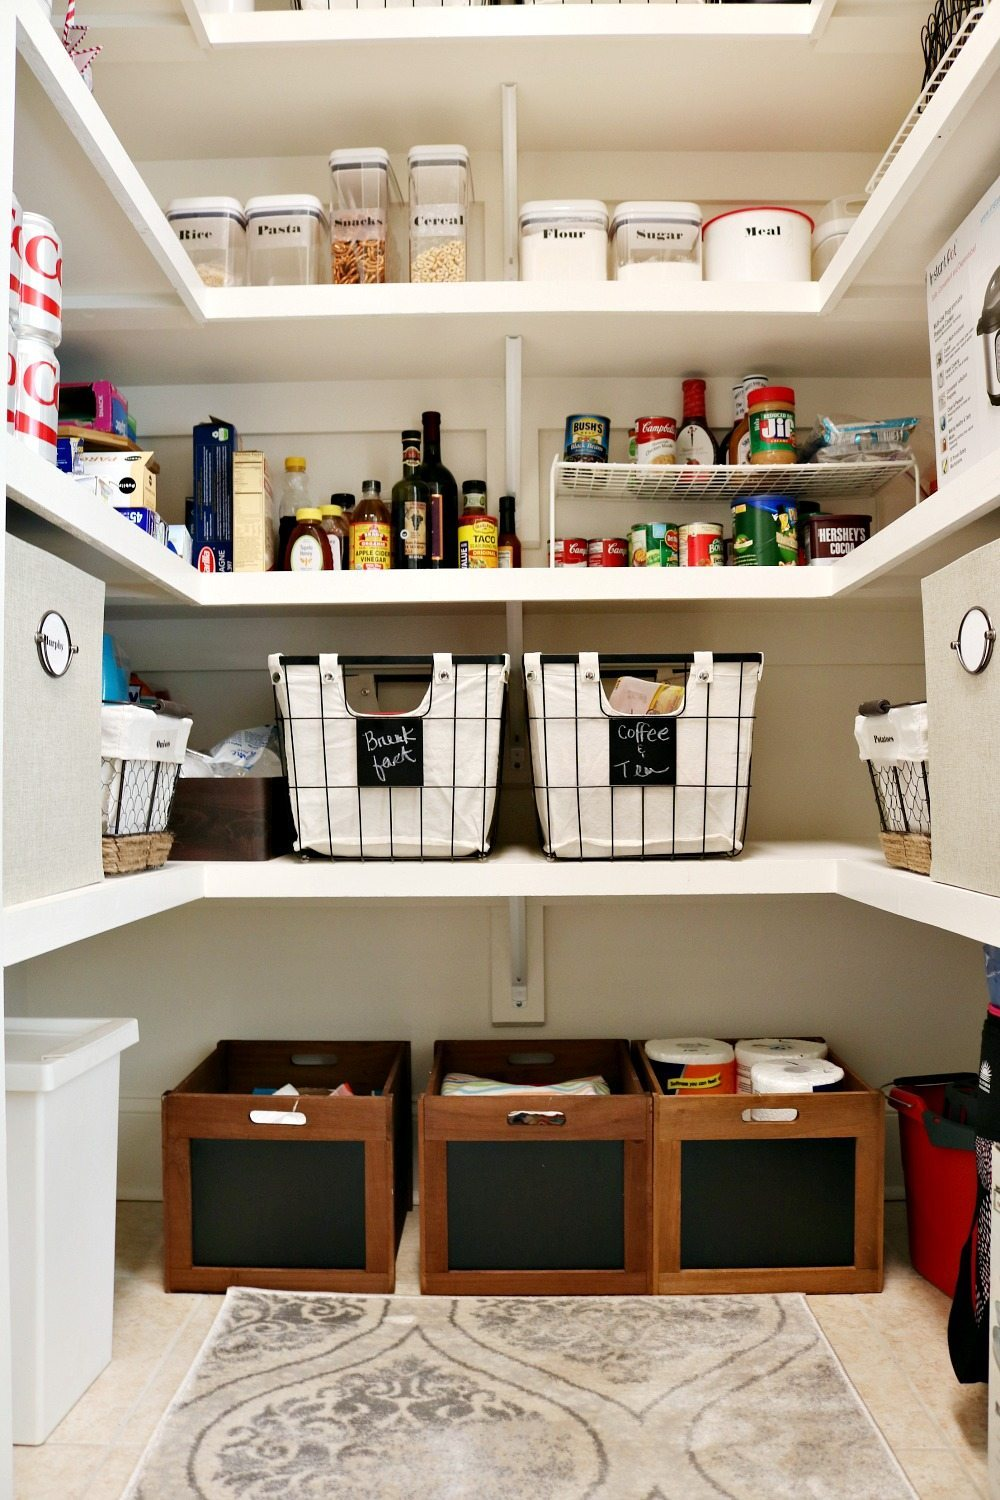 Organize your pantry with containers